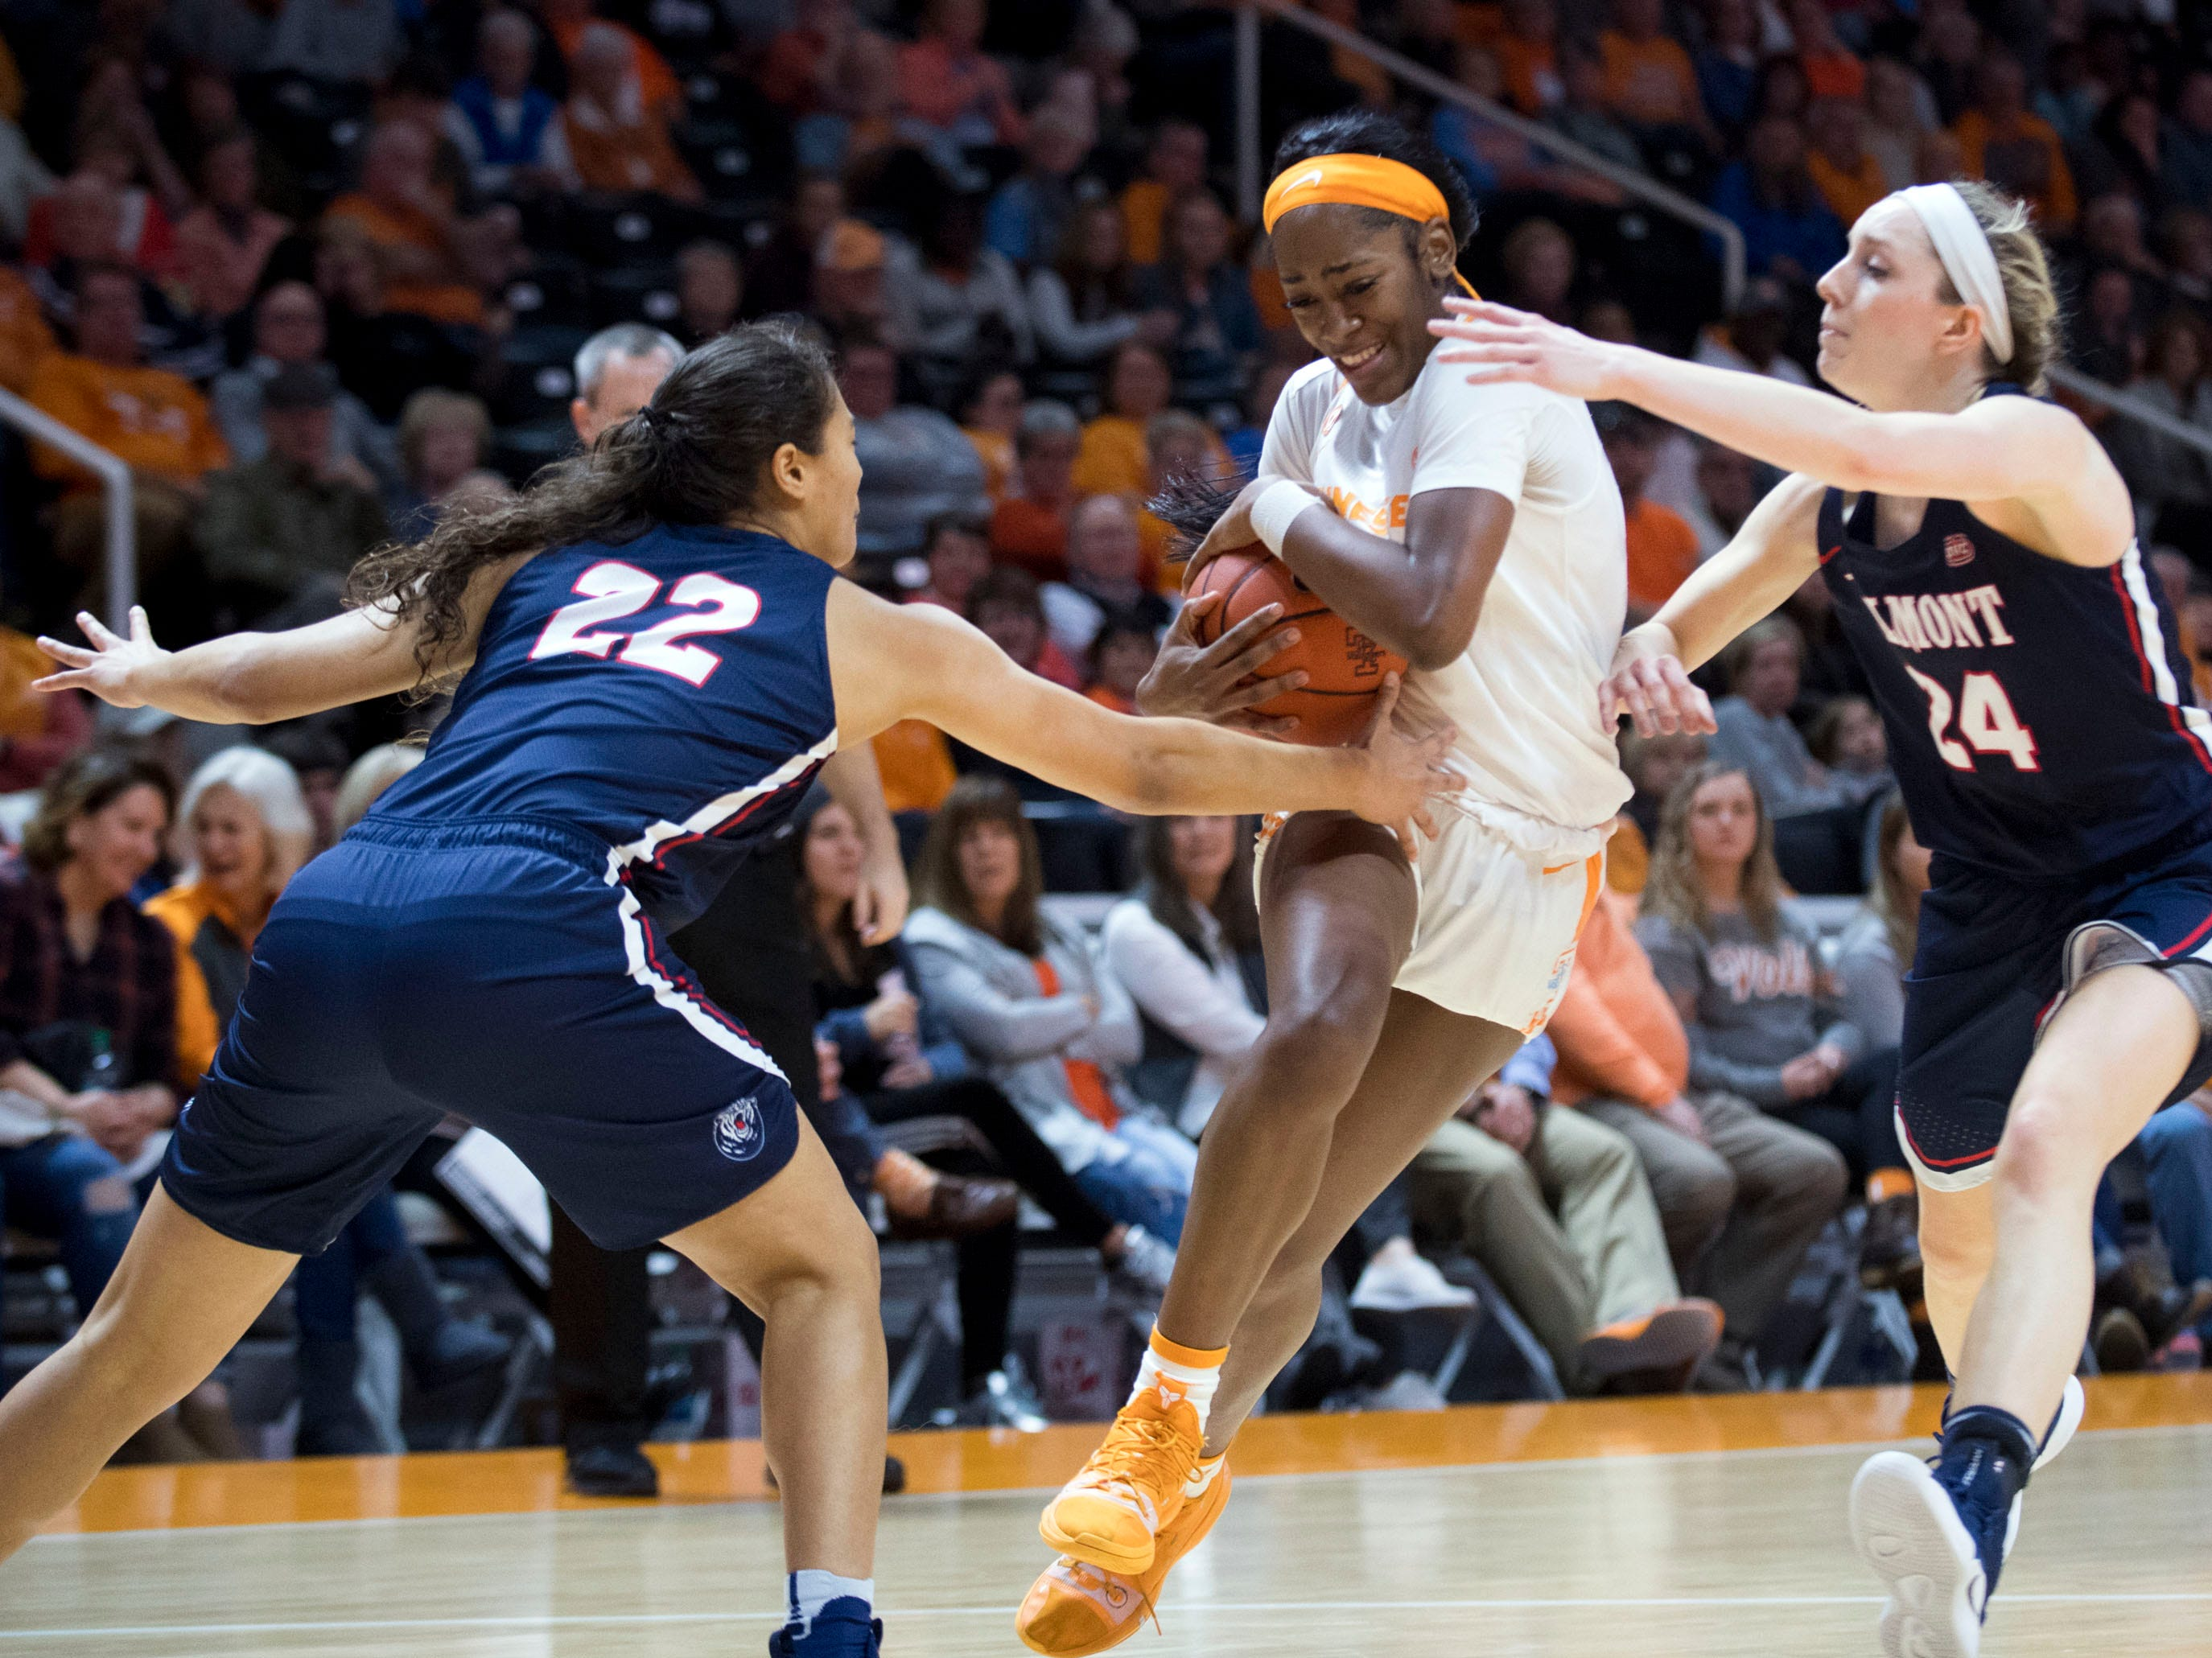 Tennessee's Zaay Green (14) tries to get through Belmont's Maddie Cook (22) and Jenny Roy (24) on Sunday, December 30, 2018.